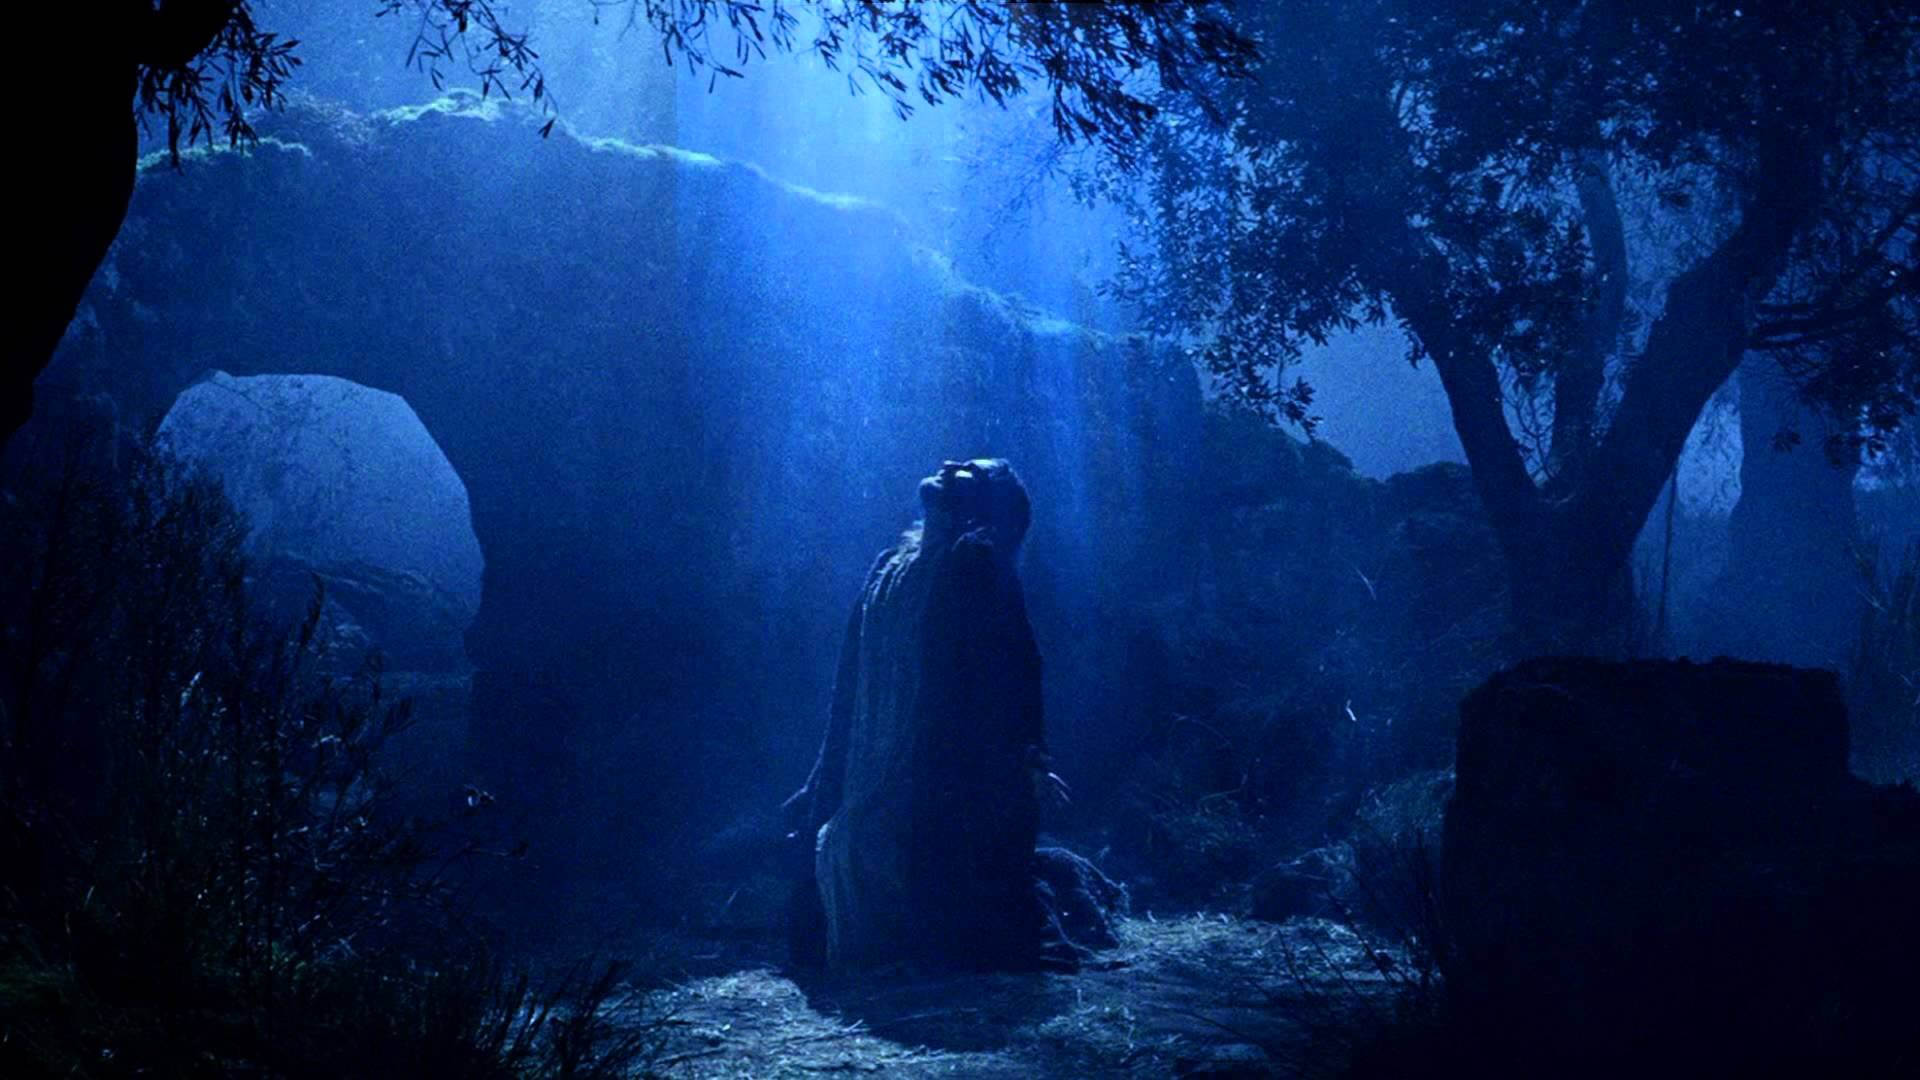 Jesus at Gethsemane: A Model for Dealing with Anxiety & Fear